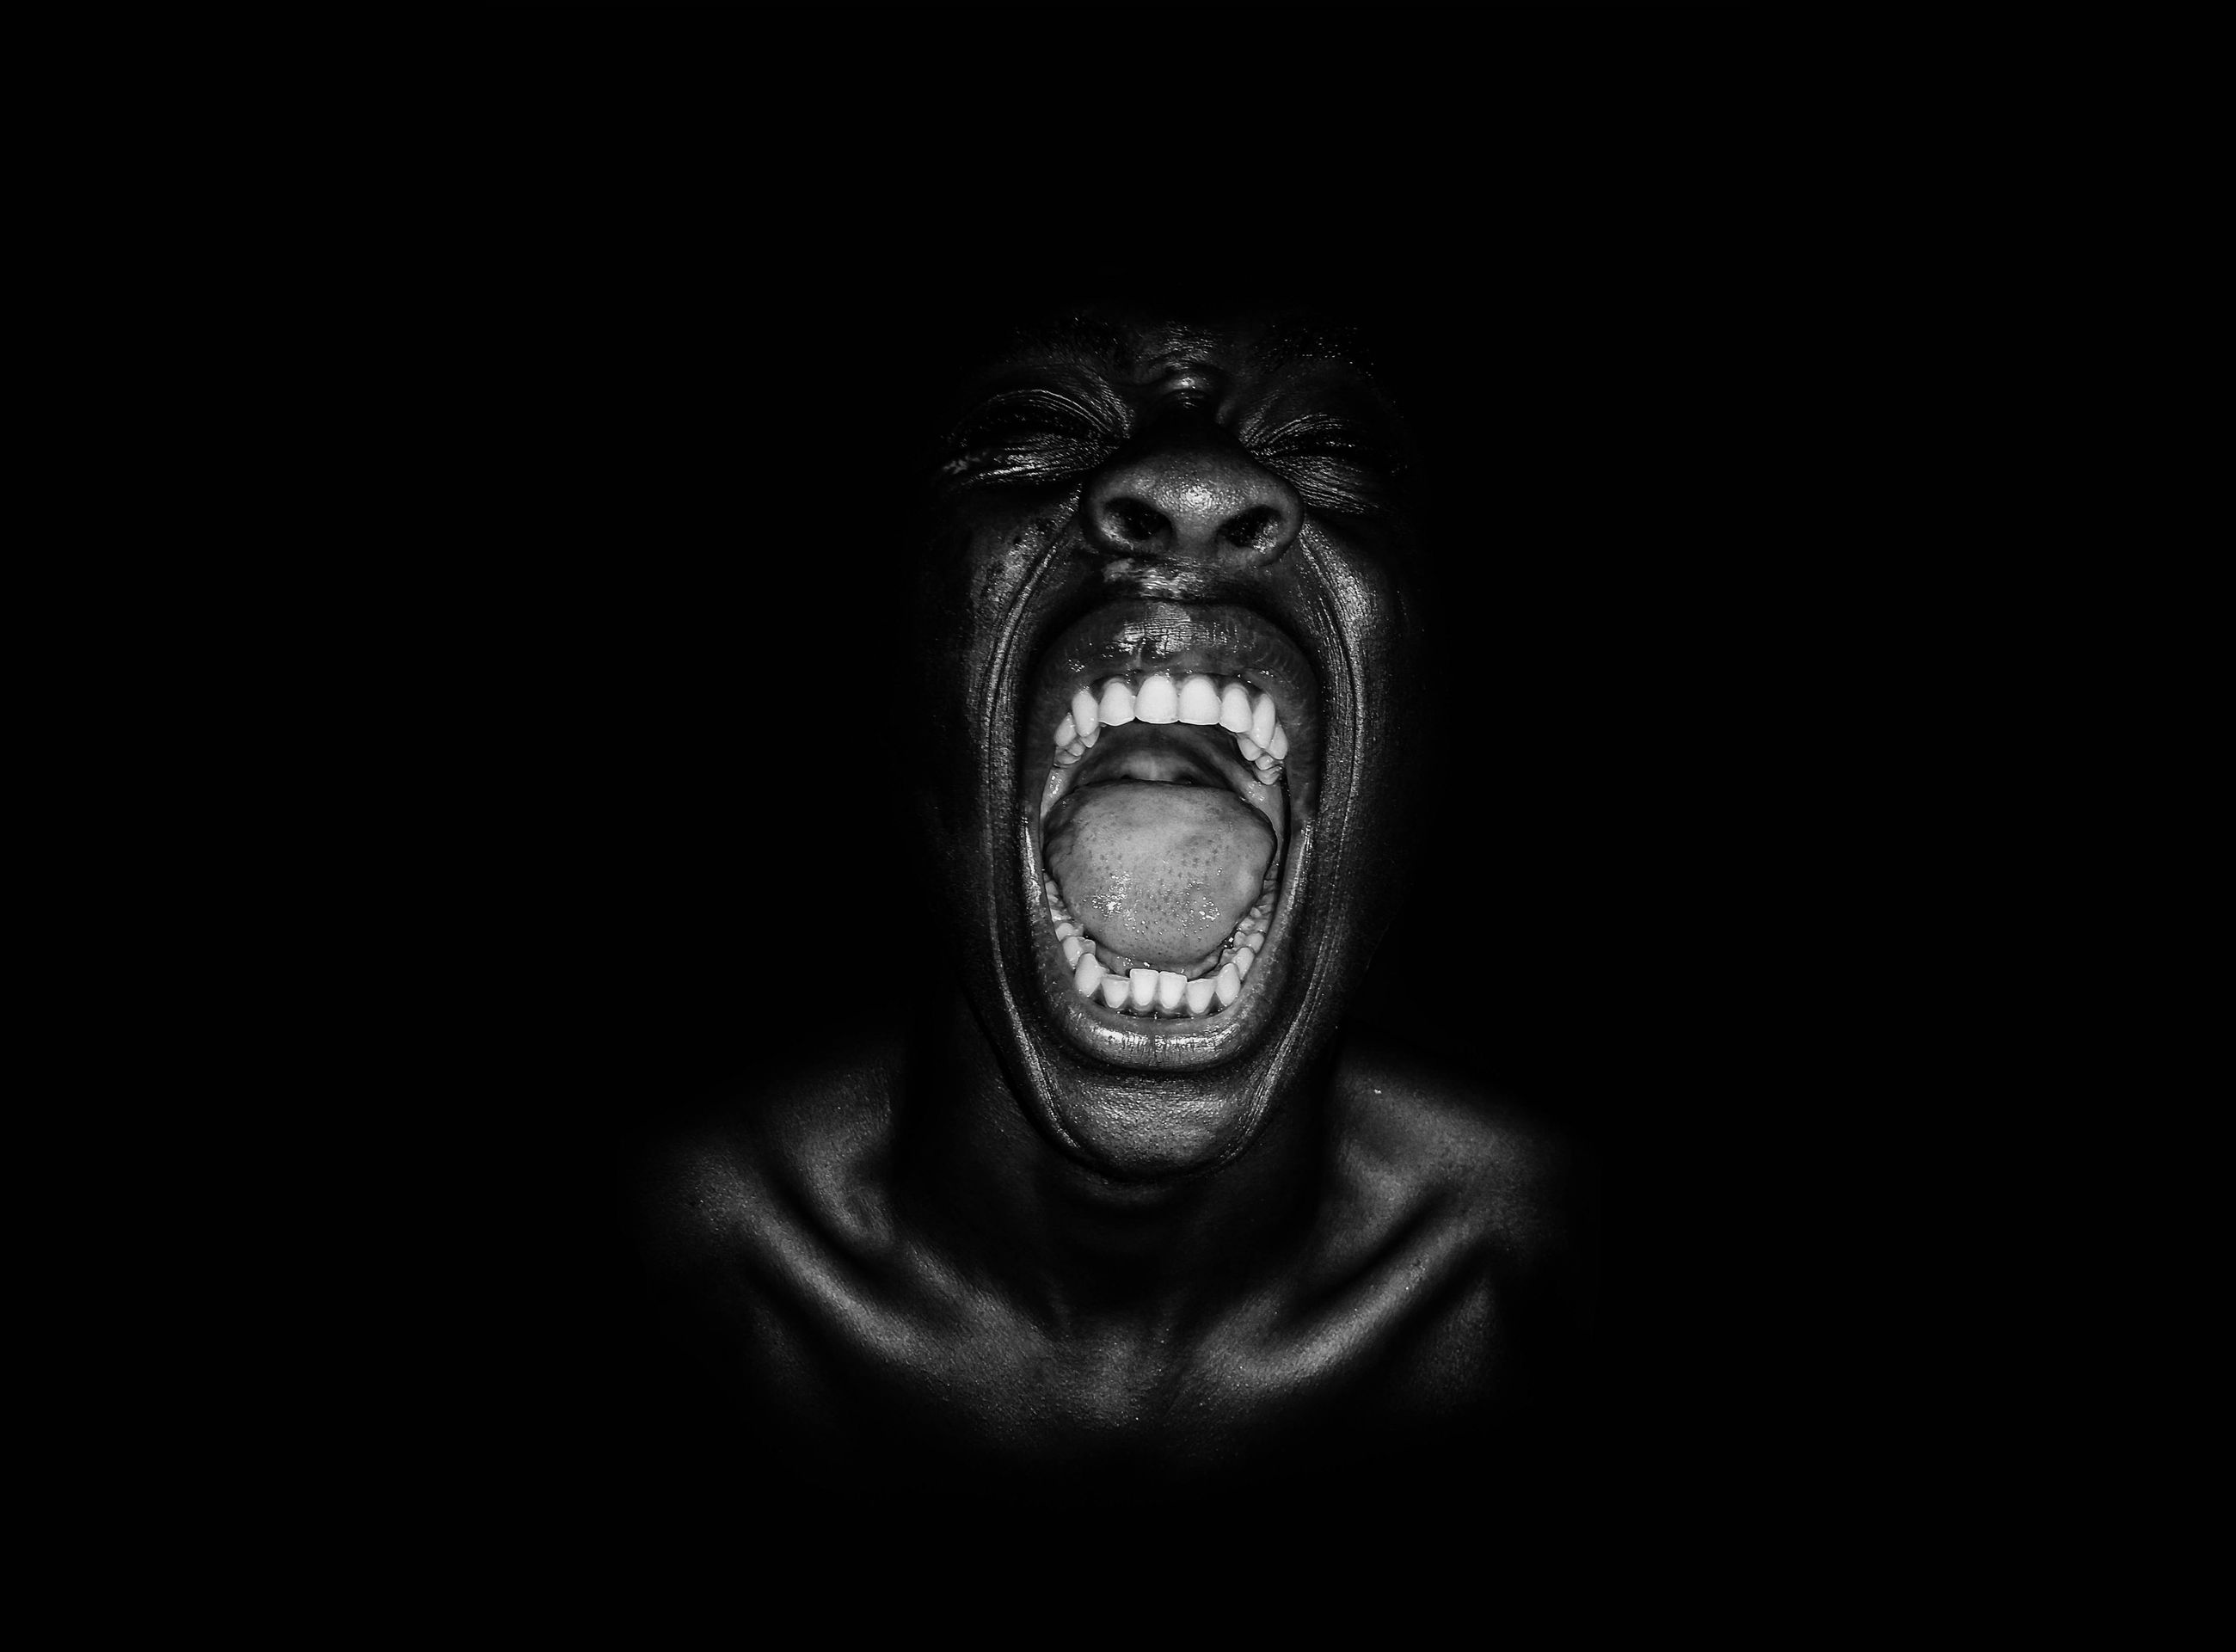 black background, negative emotion, portrait, anger, mouth open, mouth, primate, aggression, shouting, studio shot, frustration, emotion, furious, people, indoors, looking at camera, front view, facial expression, ape, dark, human teeth, human face